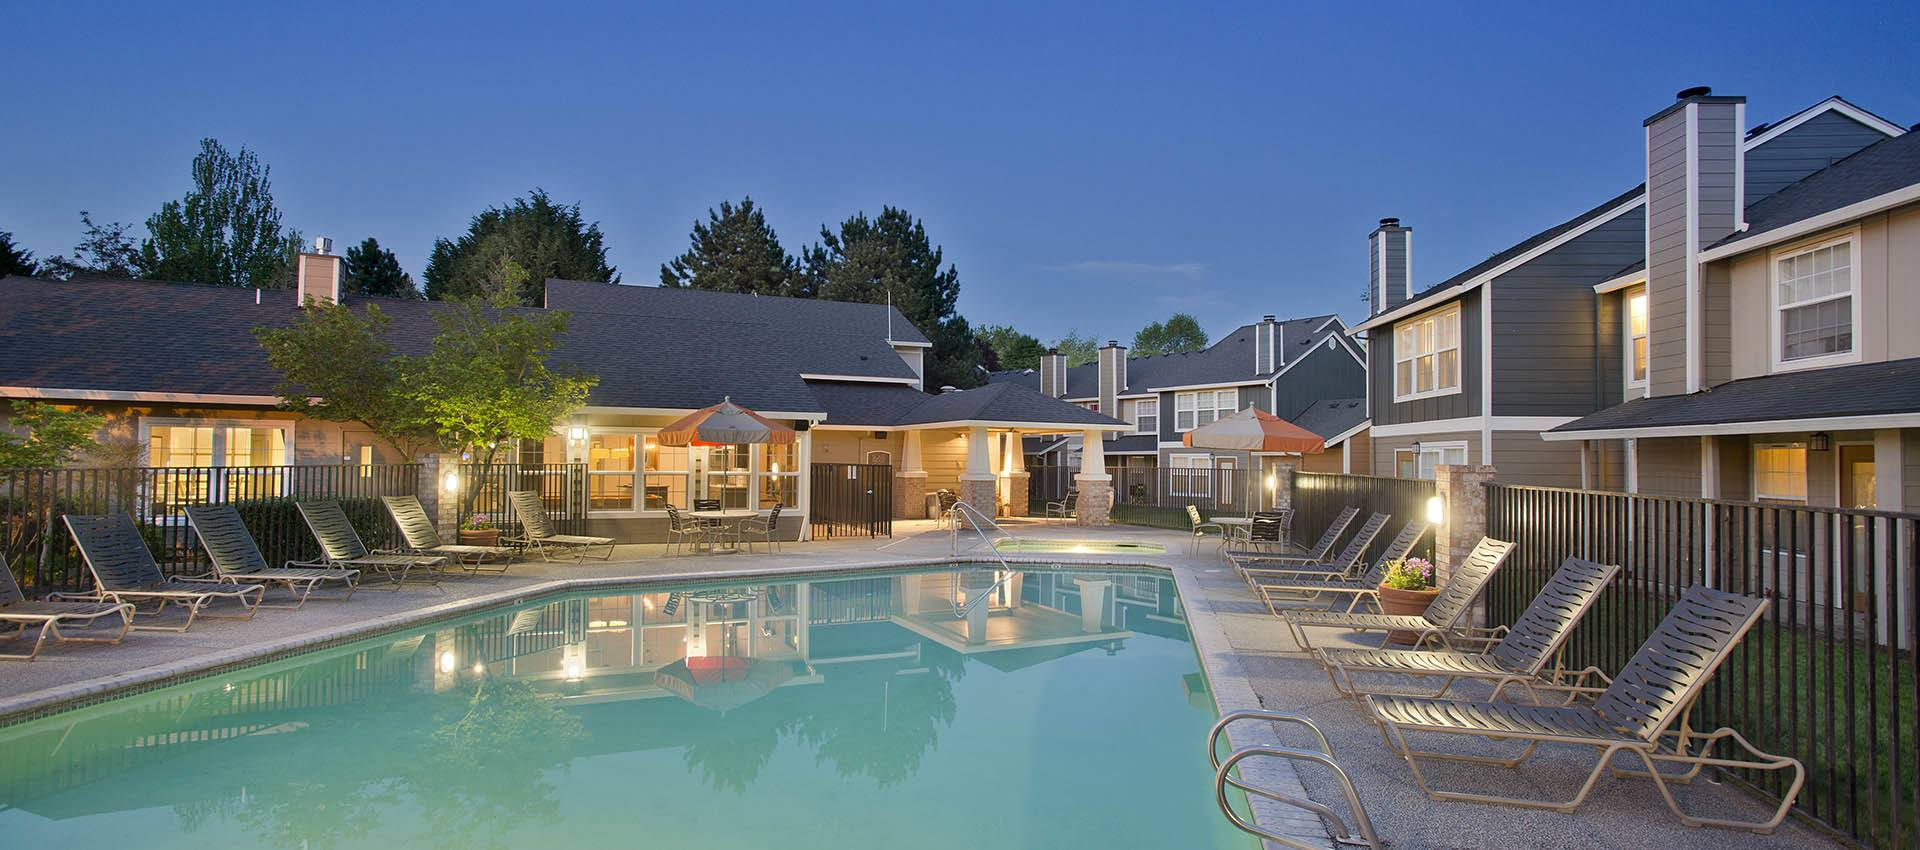 Pool at Slate Ridge at Fisher's Landing Apartment Homes in Vancouver, WA